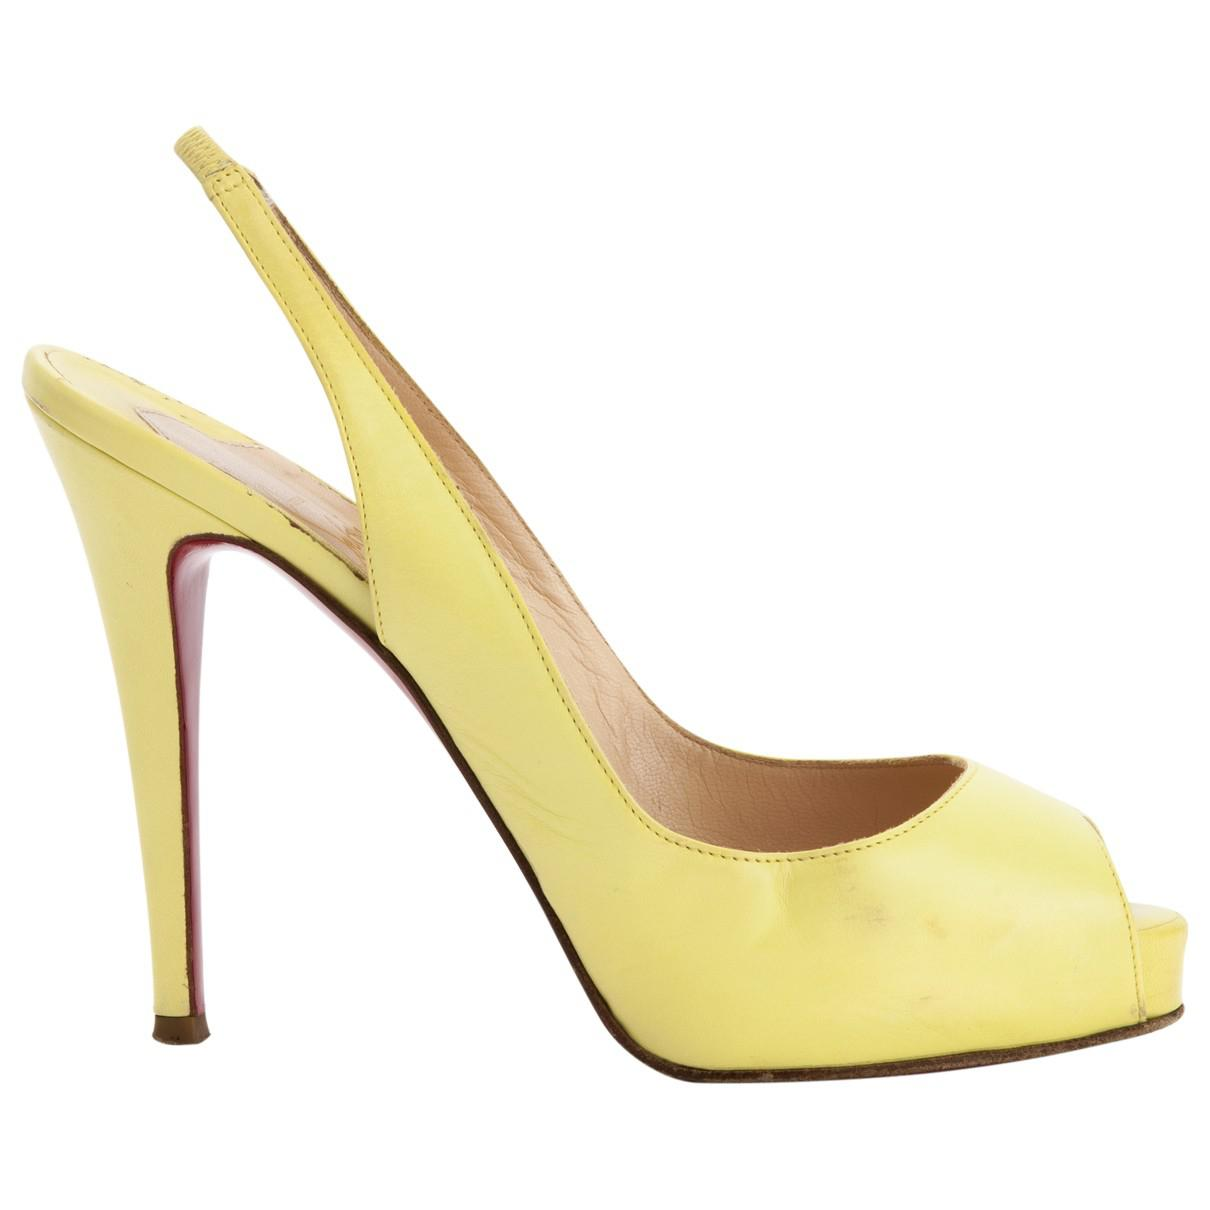 e3f7d350cbda ... best price lyst christian louboutin pre owned leather sandals in yellow  6f382 5c221